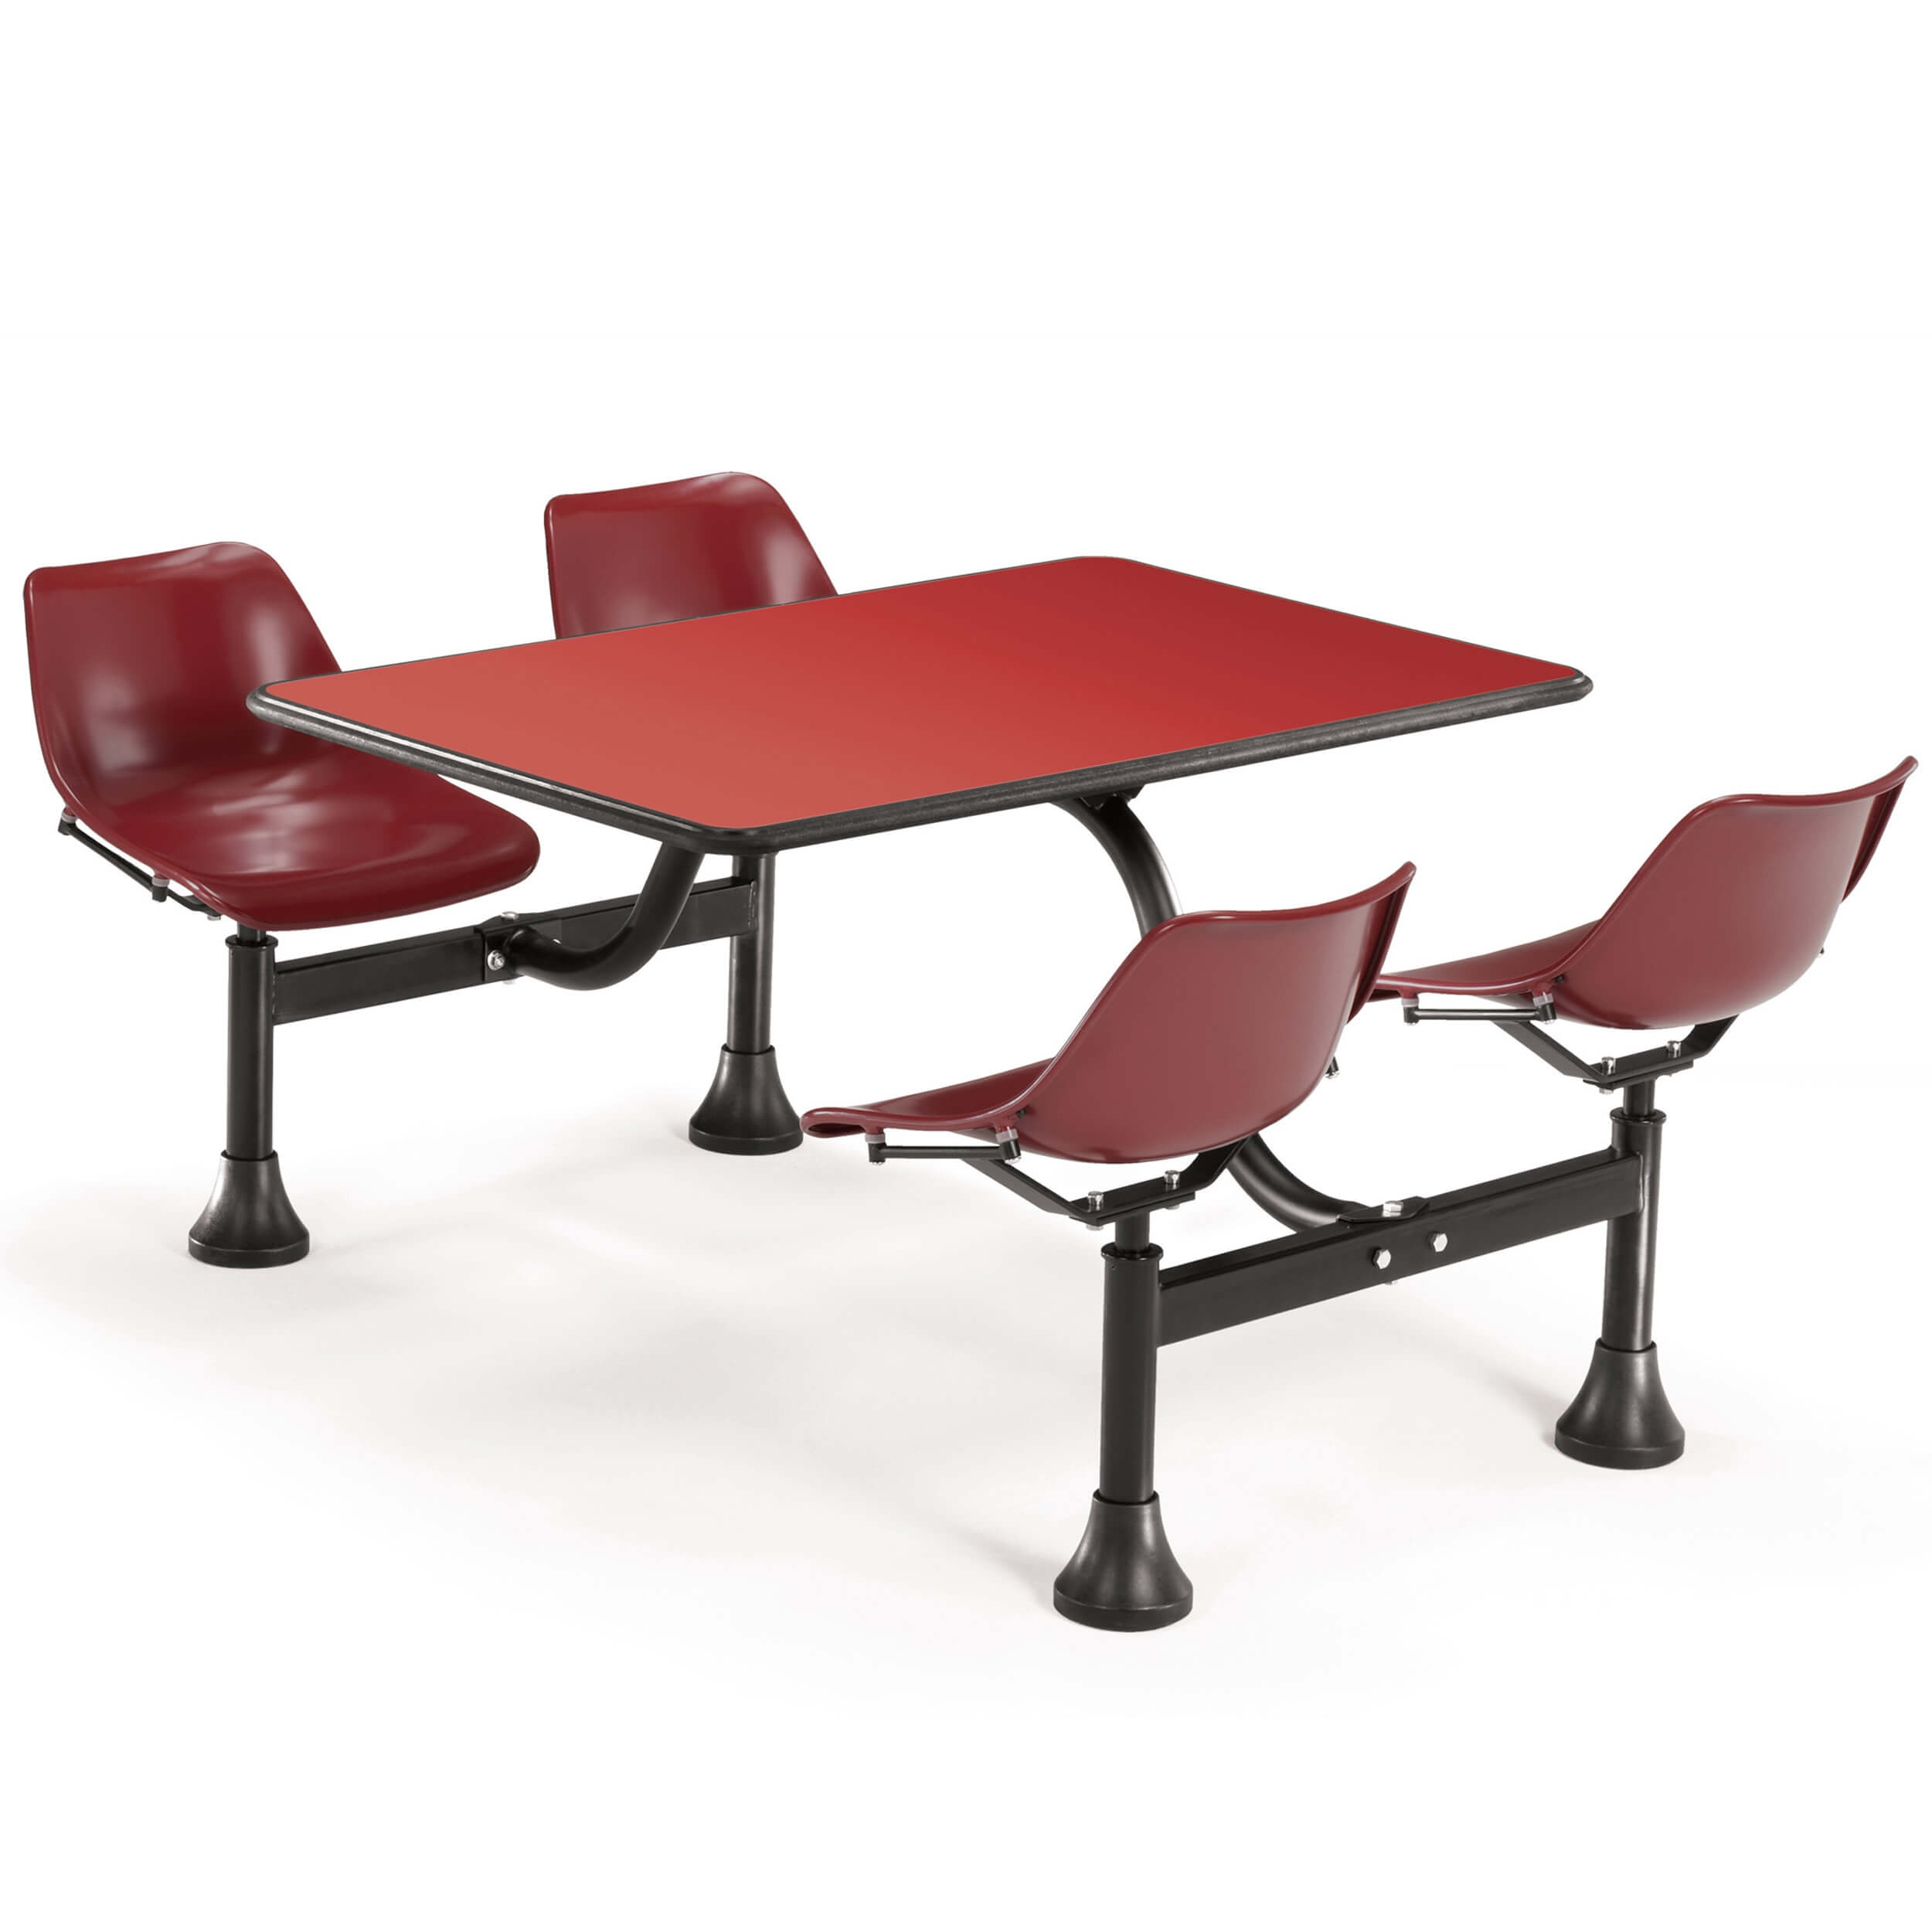 Dining booth CUB 1002 MRN RED OFM